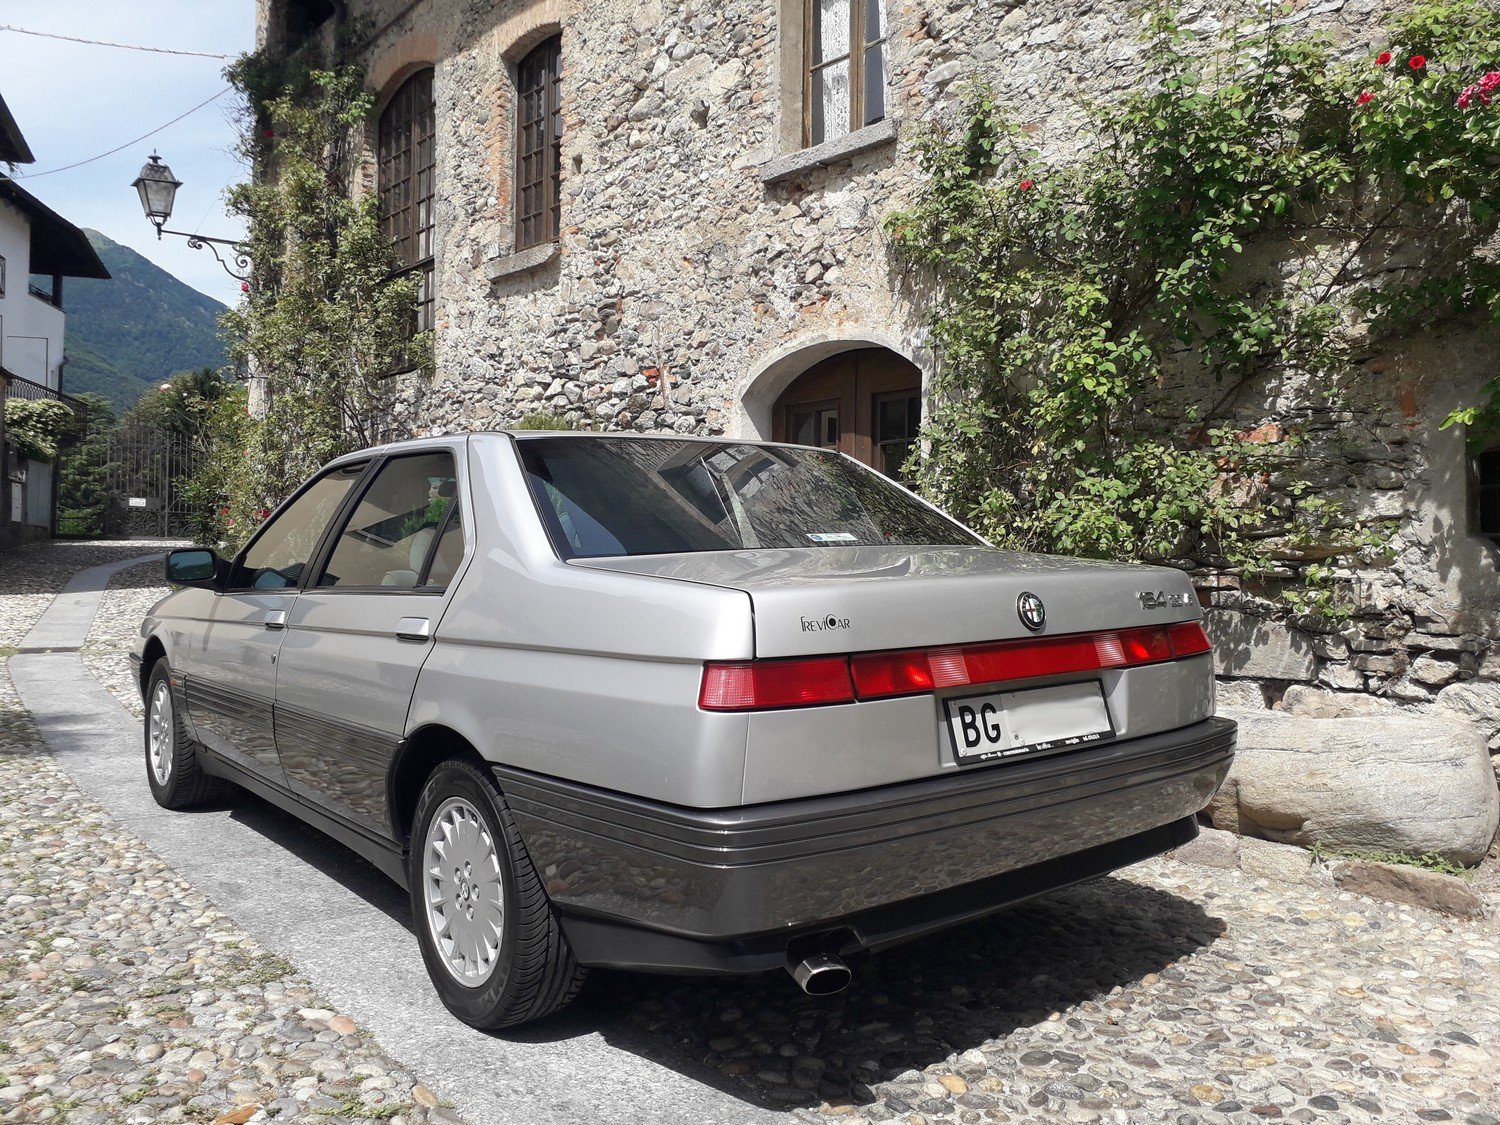 1988 As new alfa 164 3.0 V6 with 64 k km! For Sale (picture 3 of 6)